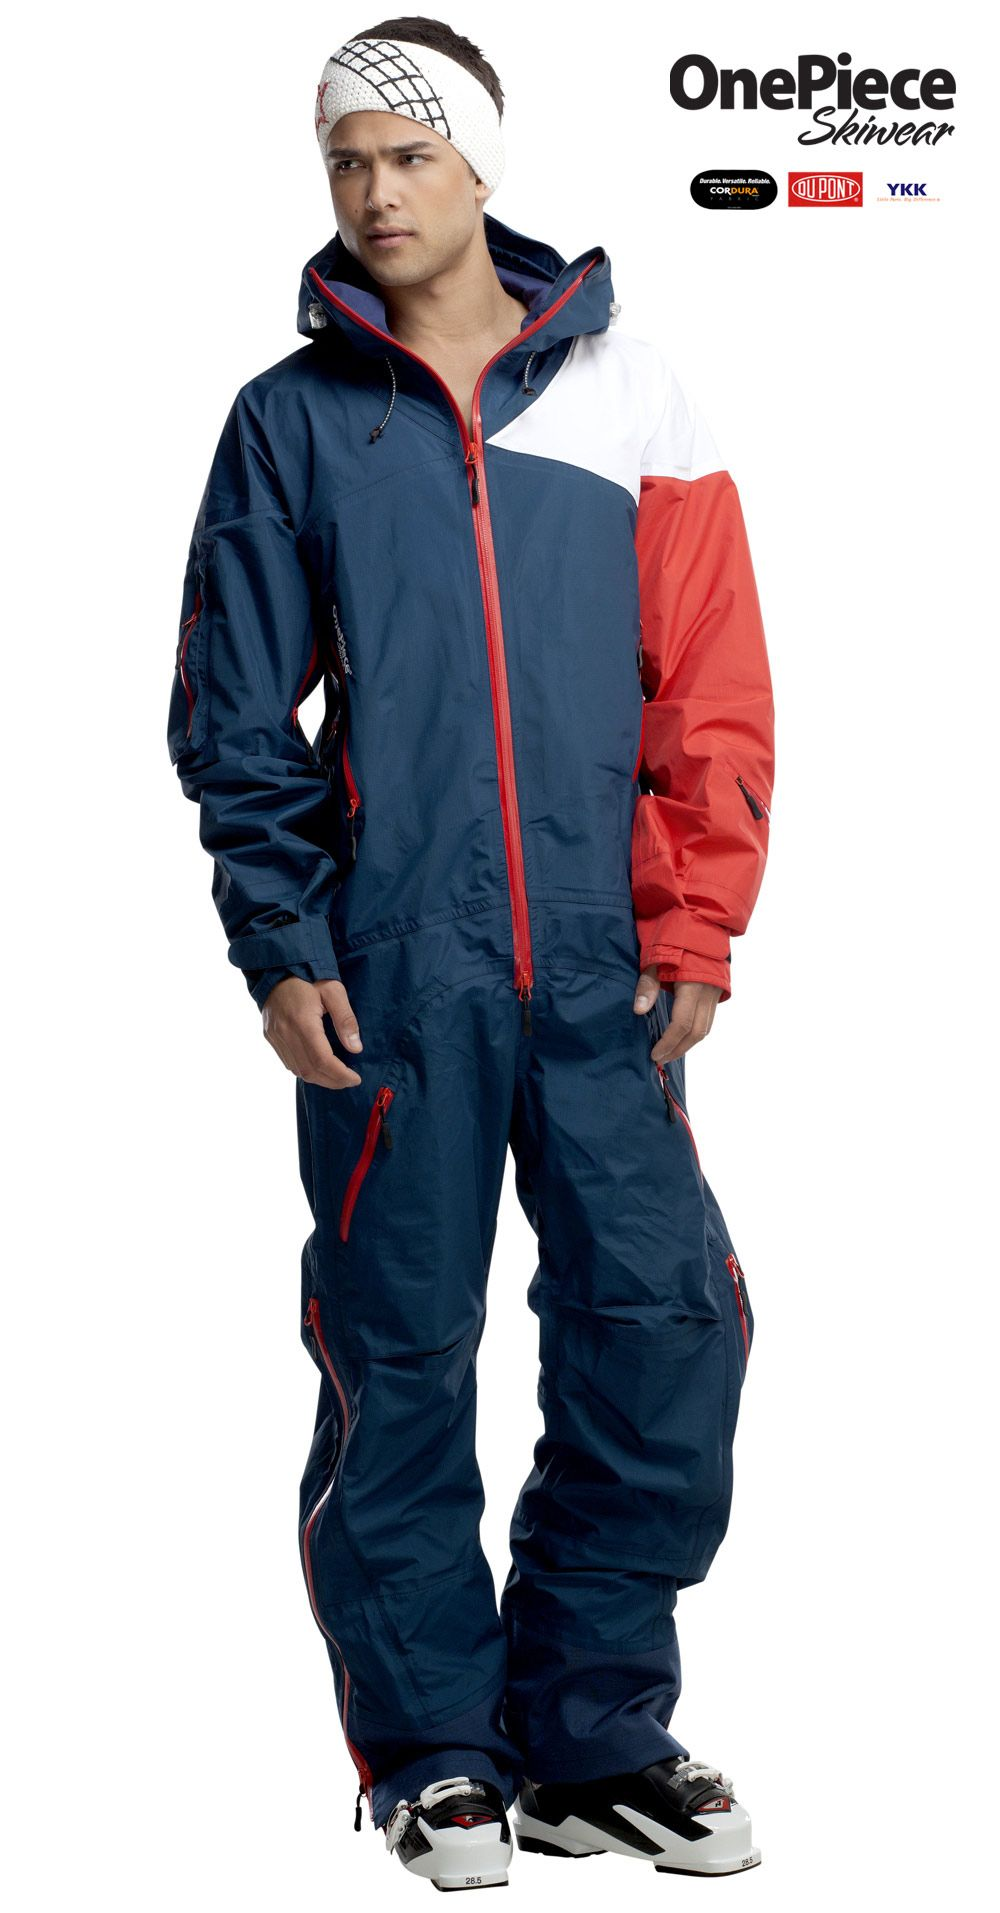 f96c64fe1442 OnePiece Skiwear Offpiste (Mens size) One Piece Suit